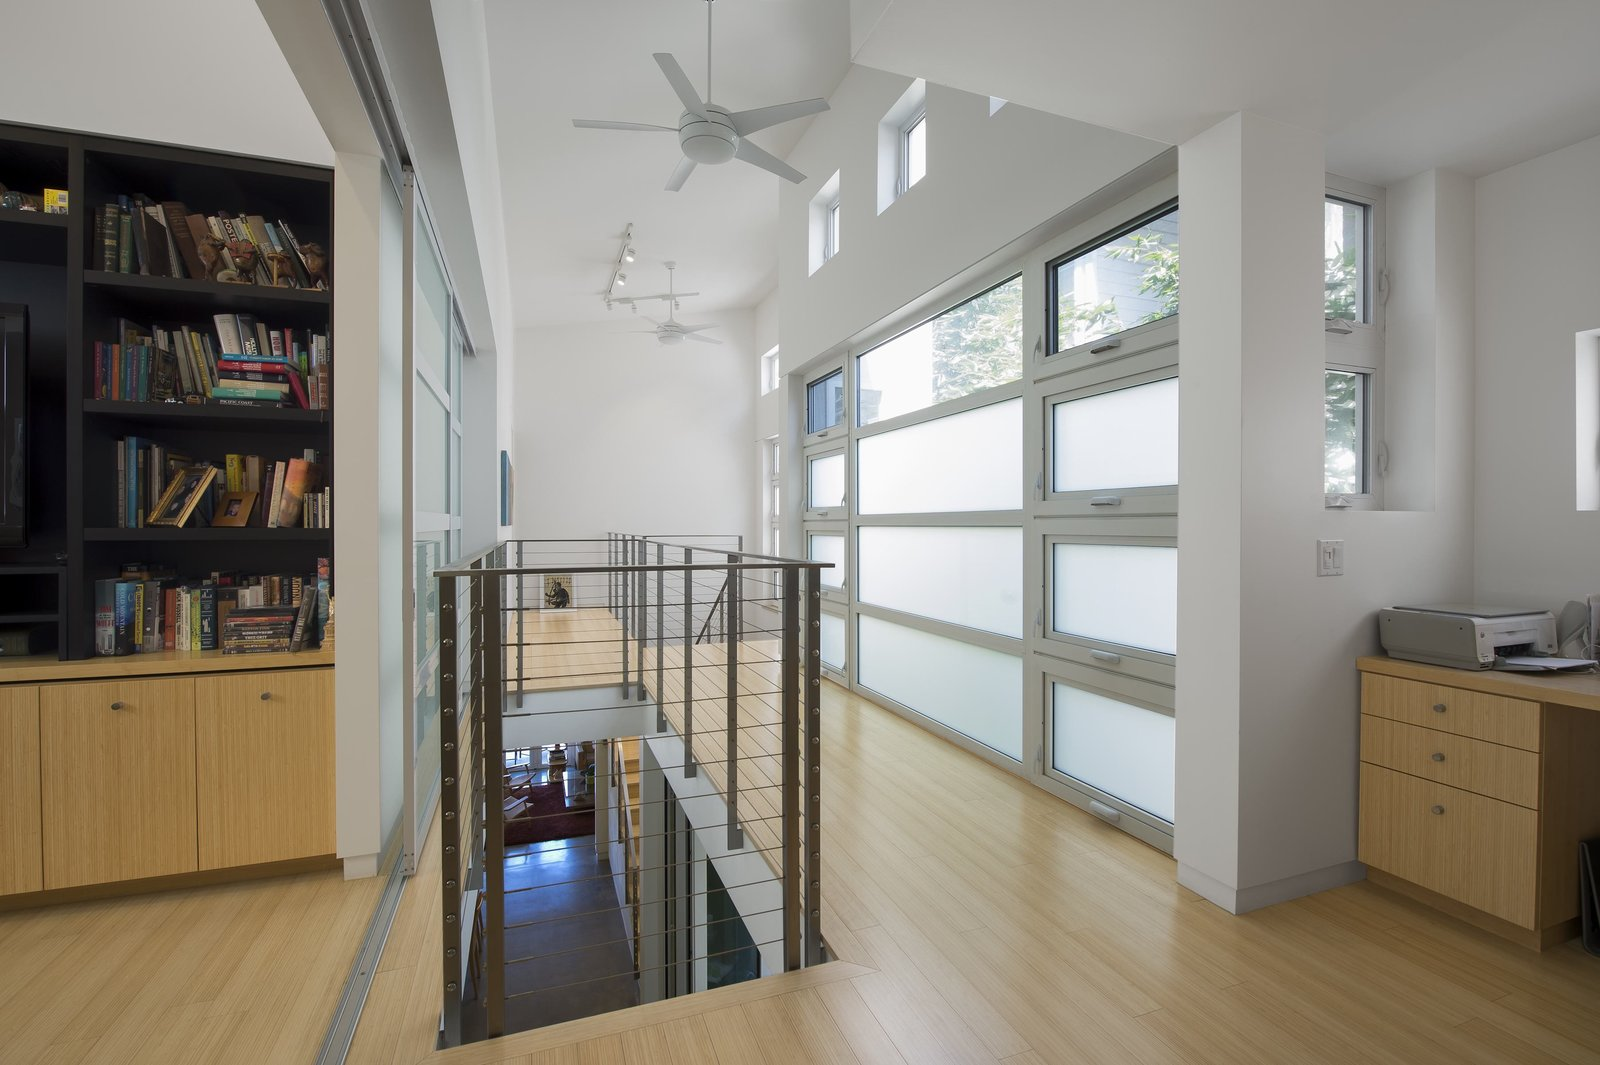 """Upstairs, passive ventilation gets an assist from high-efficiency Emerson ceiling fans. Photo by Ken Pagliaro Photography.  Photo 5 of 8 in A Sustainable """"Case Study"""" House in California"""